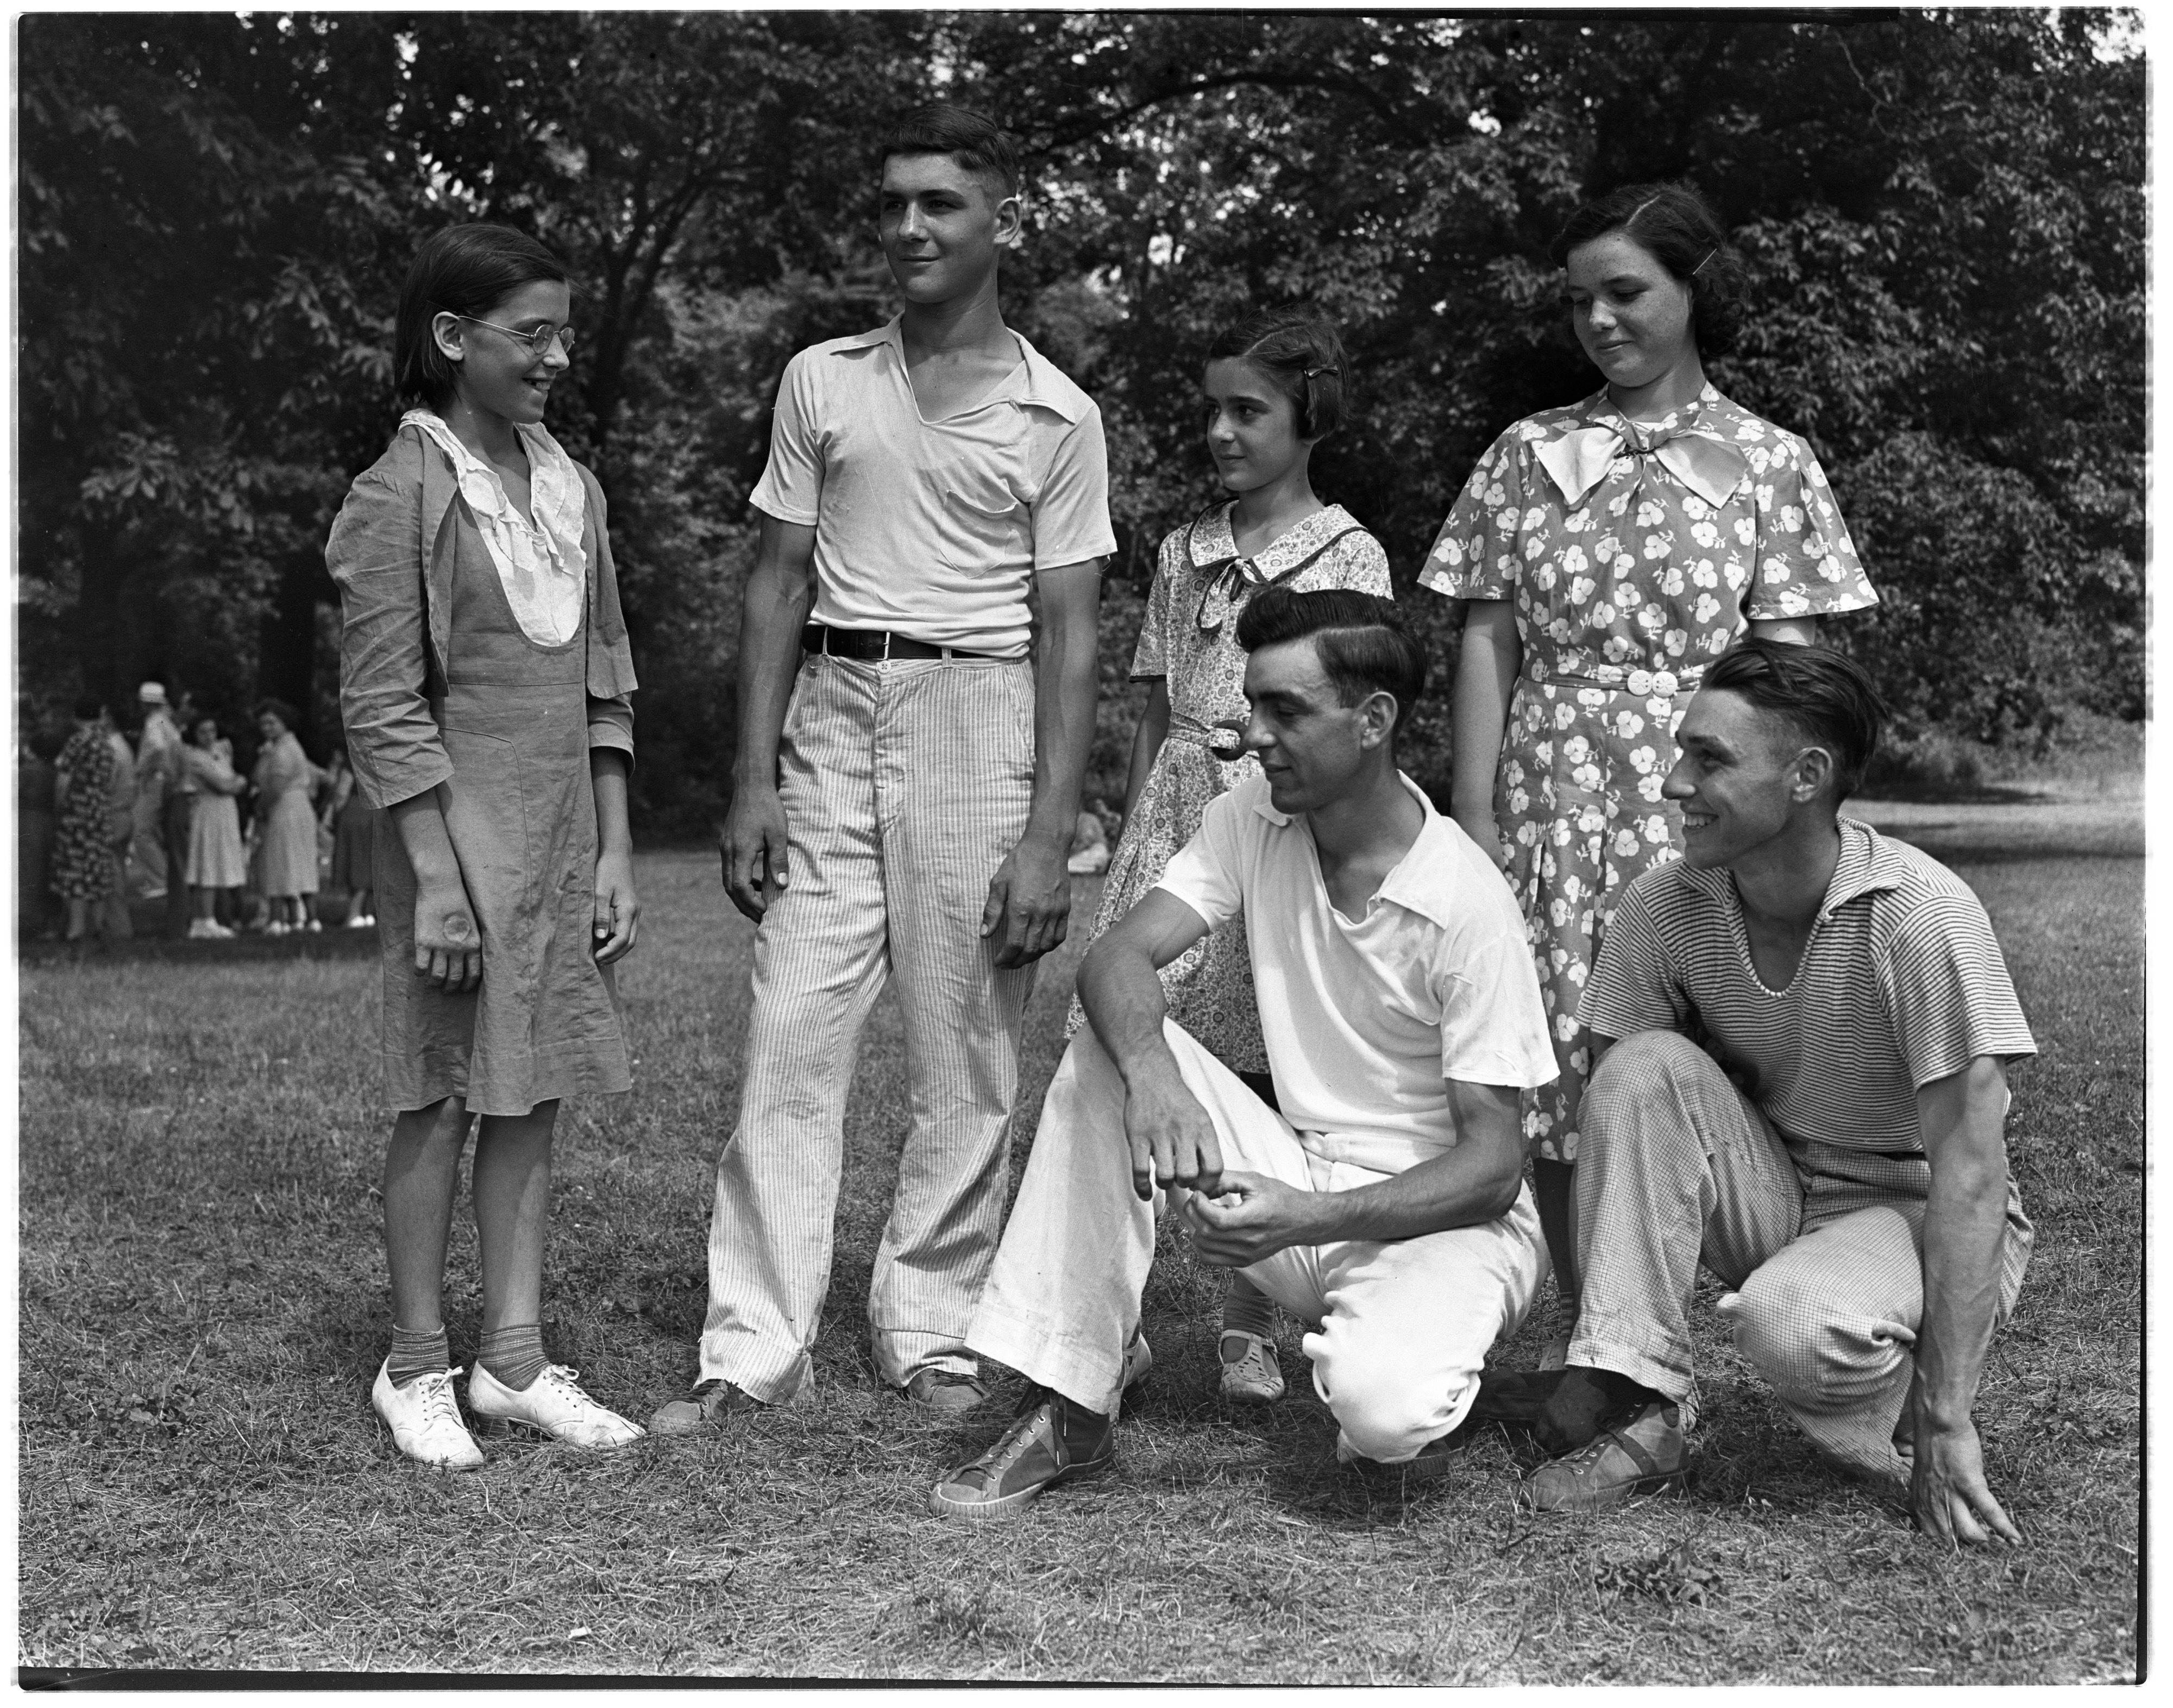 Six 4-H Members In Ruhlig Family, August 1938 image